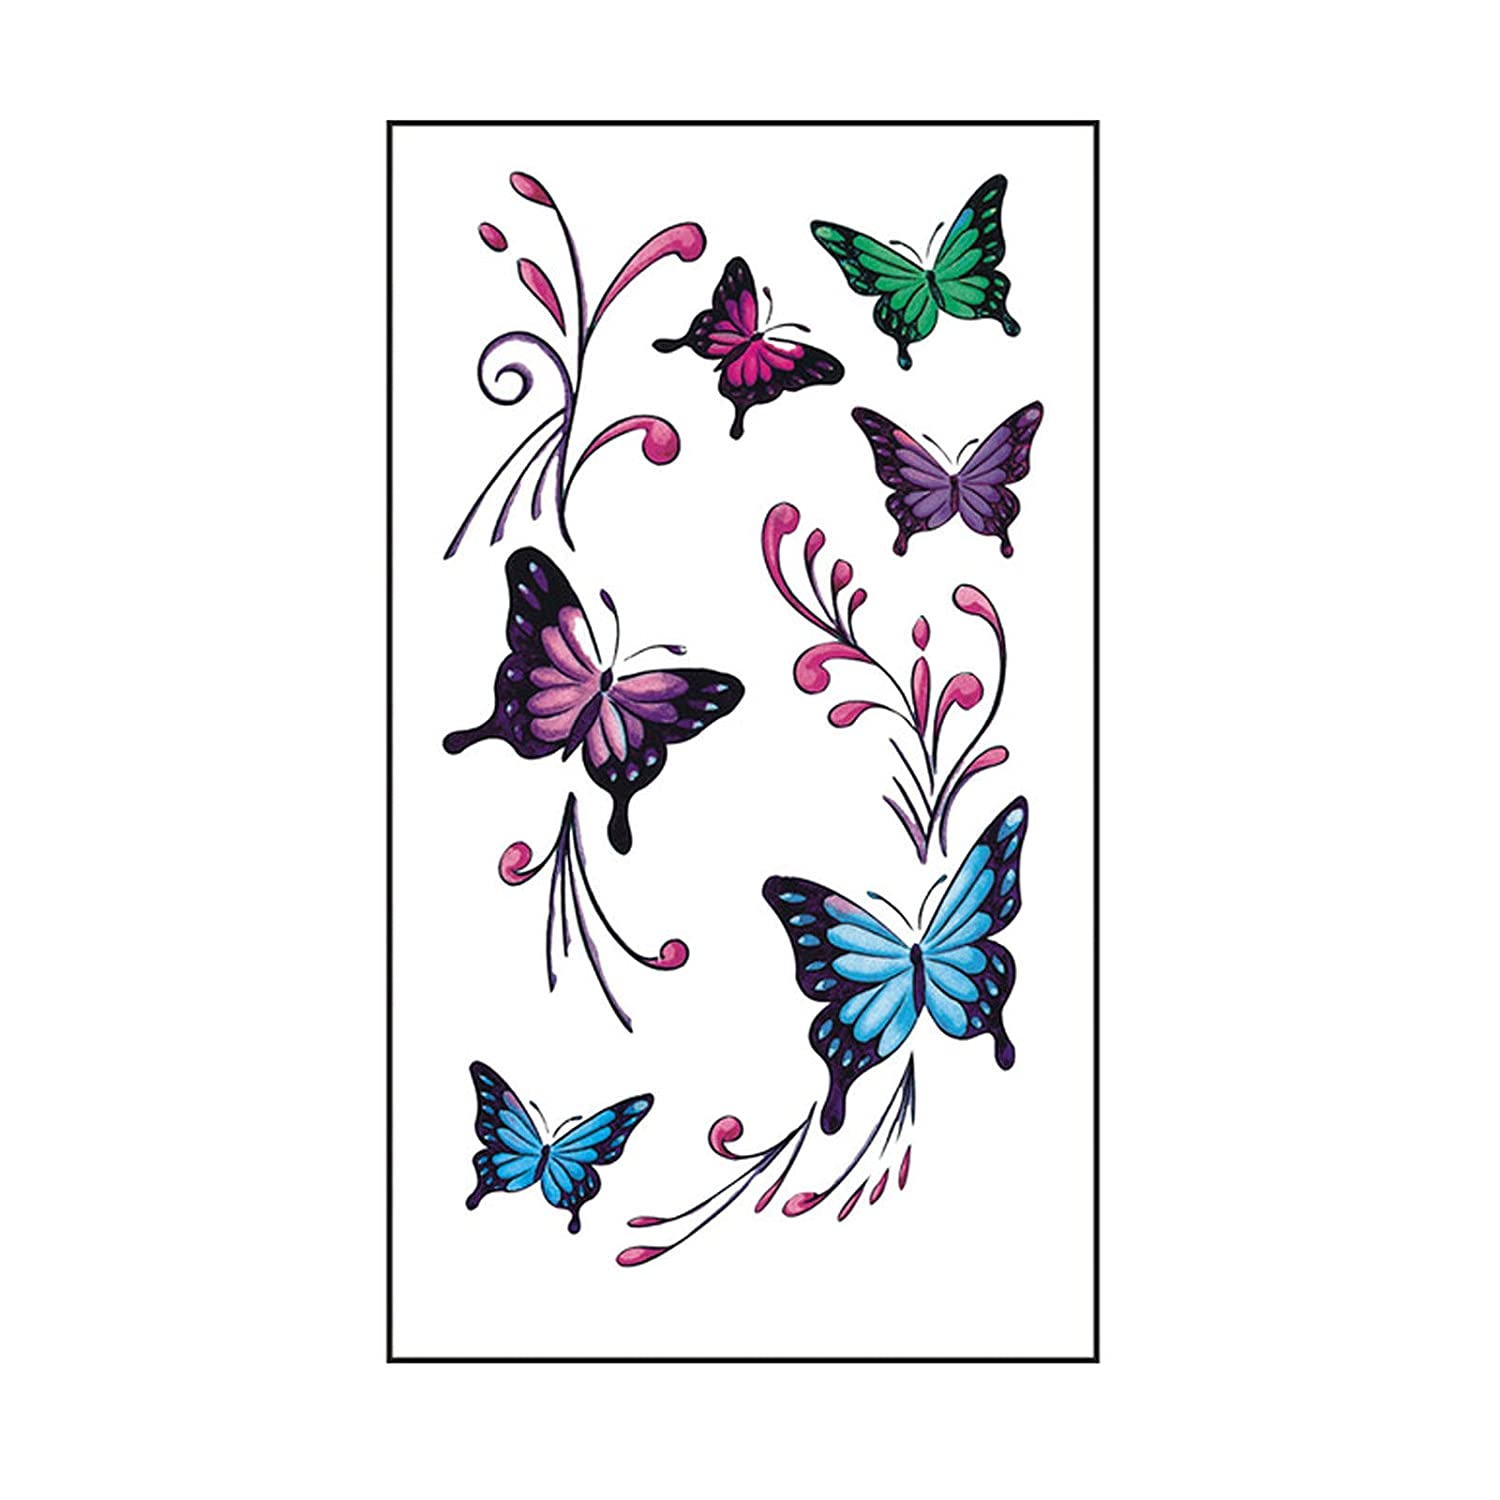 3D Tattoo Stickers - In stock Art Realistic Tattoos Temporary Free shipping anywhere in the nation Effecte